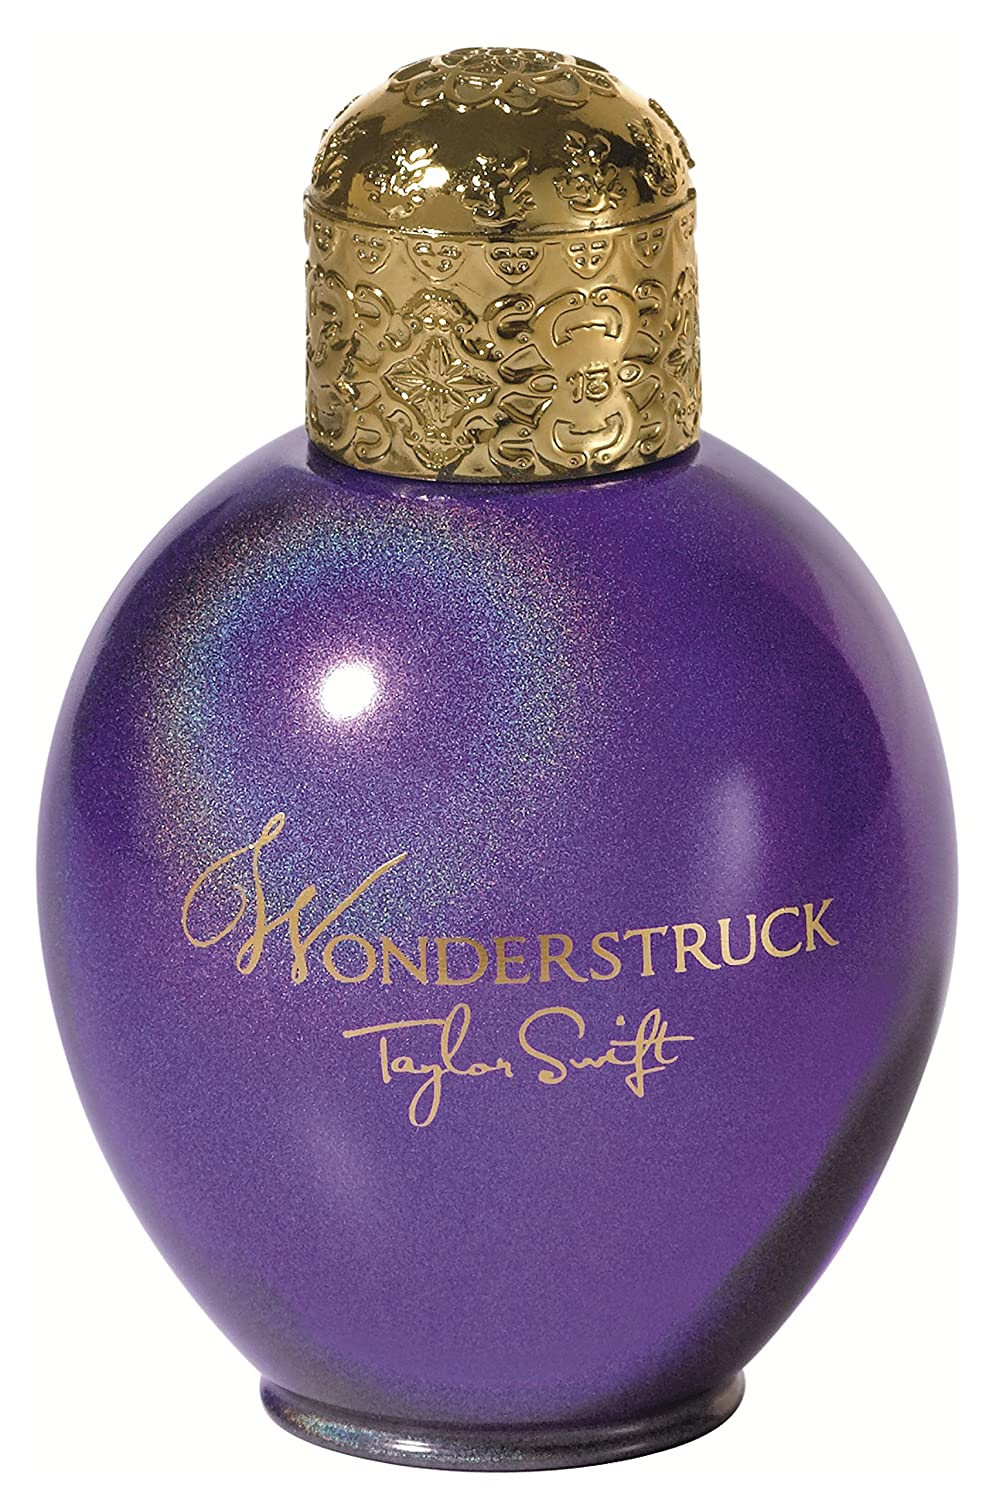 Wonderstruck Eau De Parfum Spray - 30ml/1oz Taylor Swift TSWF40003